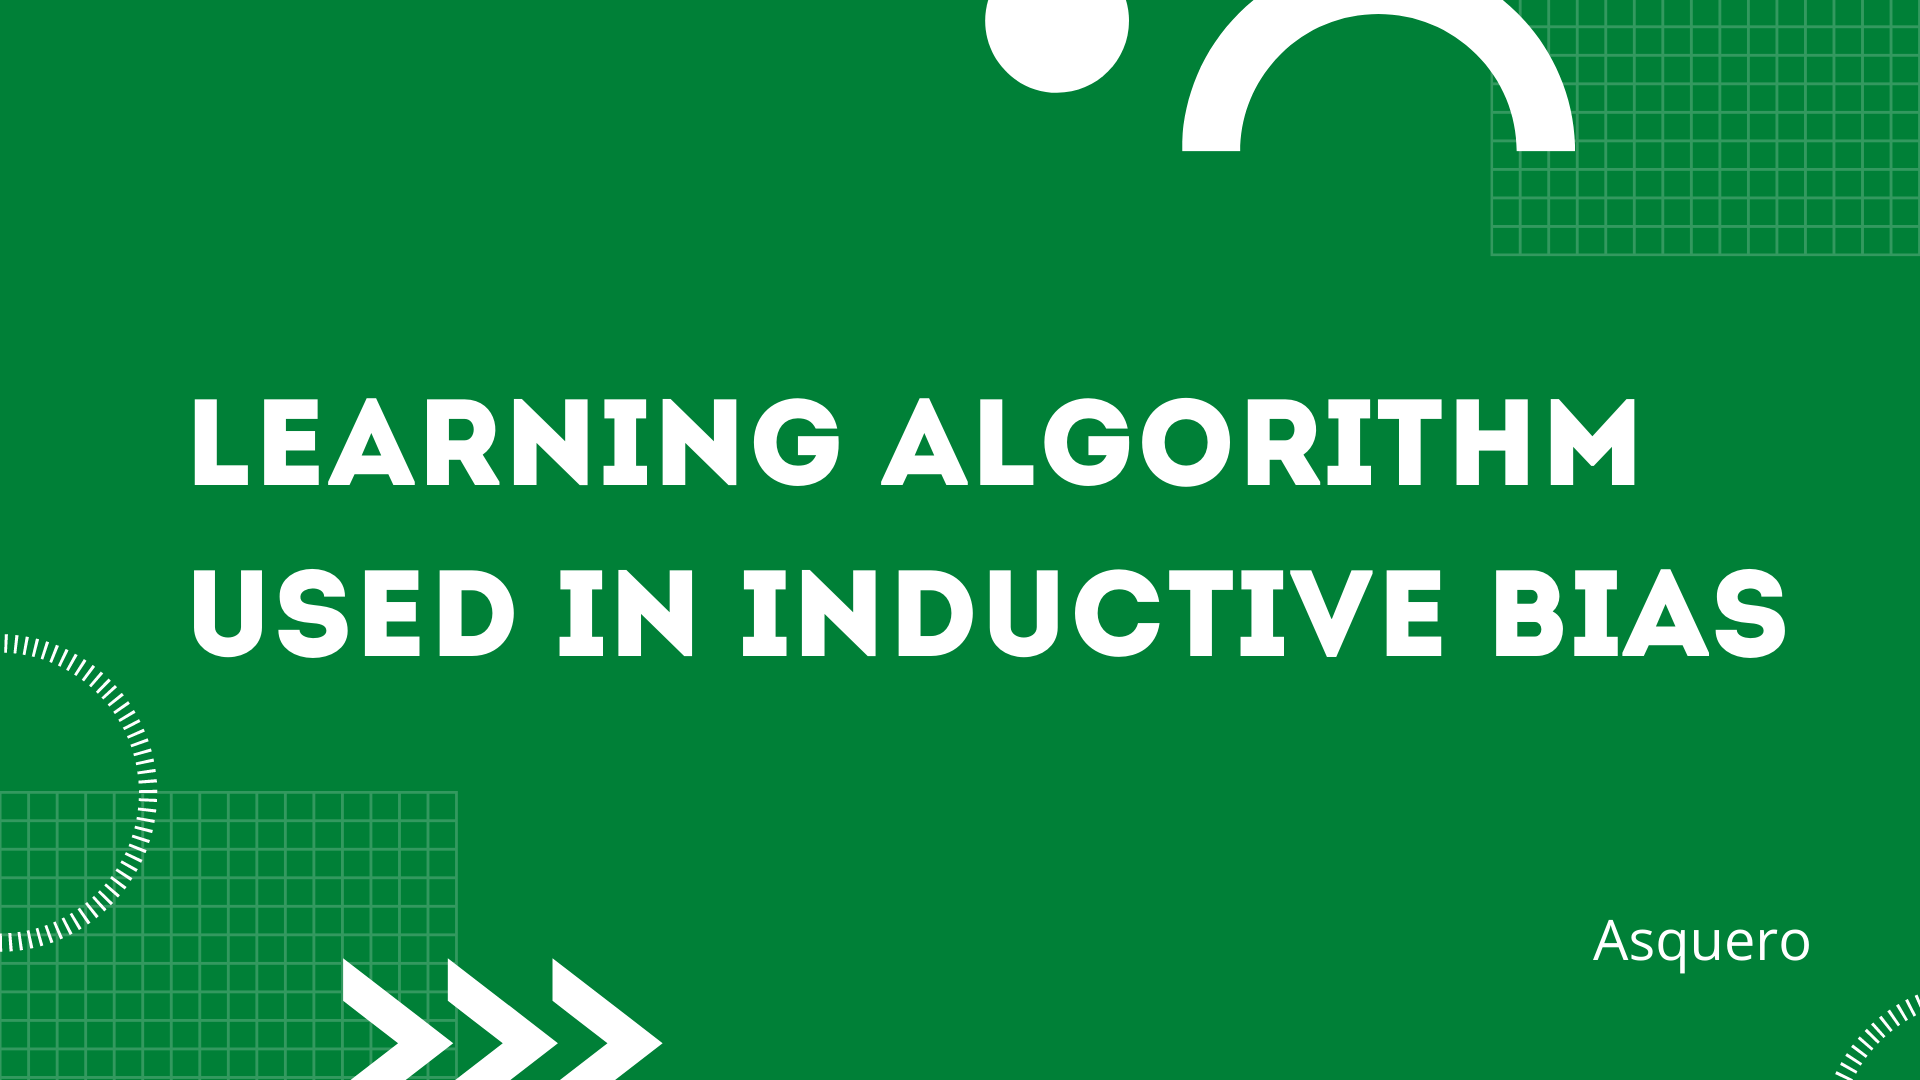 Learning Algorithm used in Inductive Bias